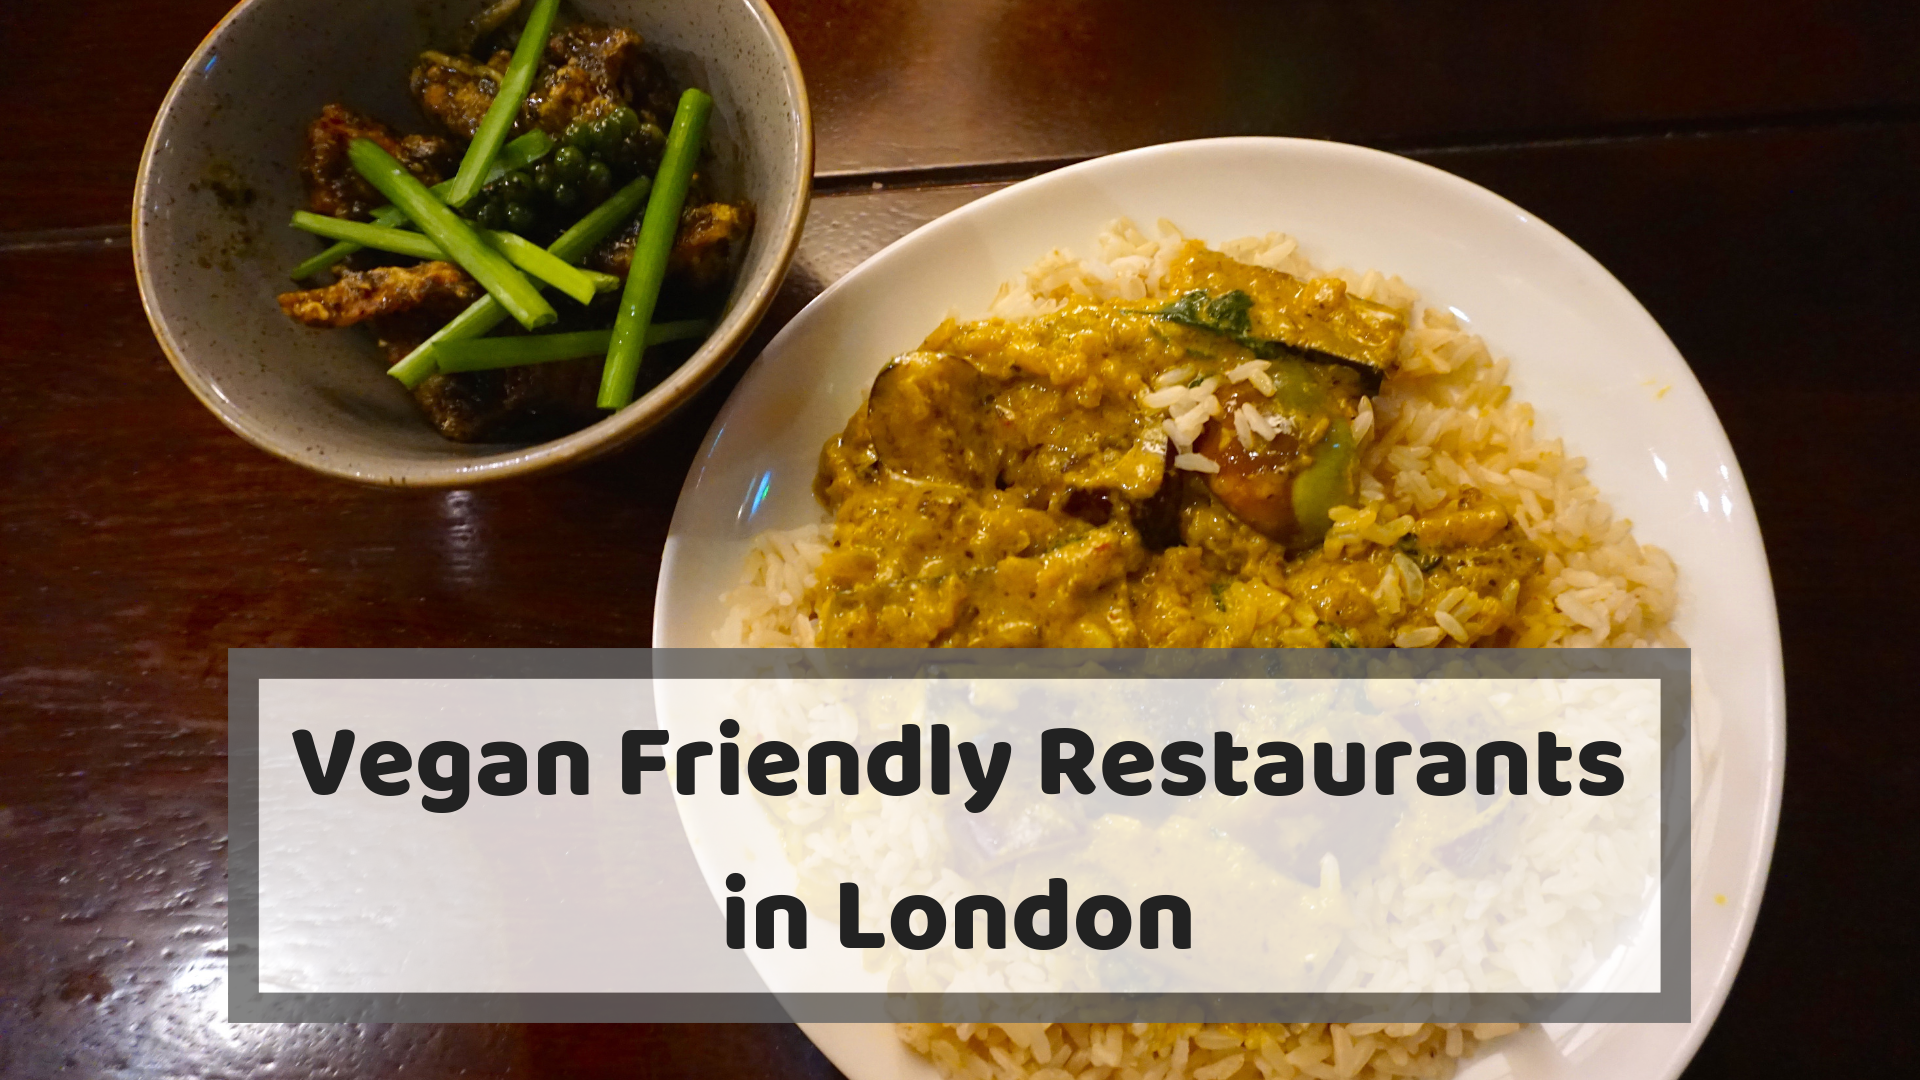 A guide to the vegan friendly restaurants in London where vegans and meat eaters can dine together.